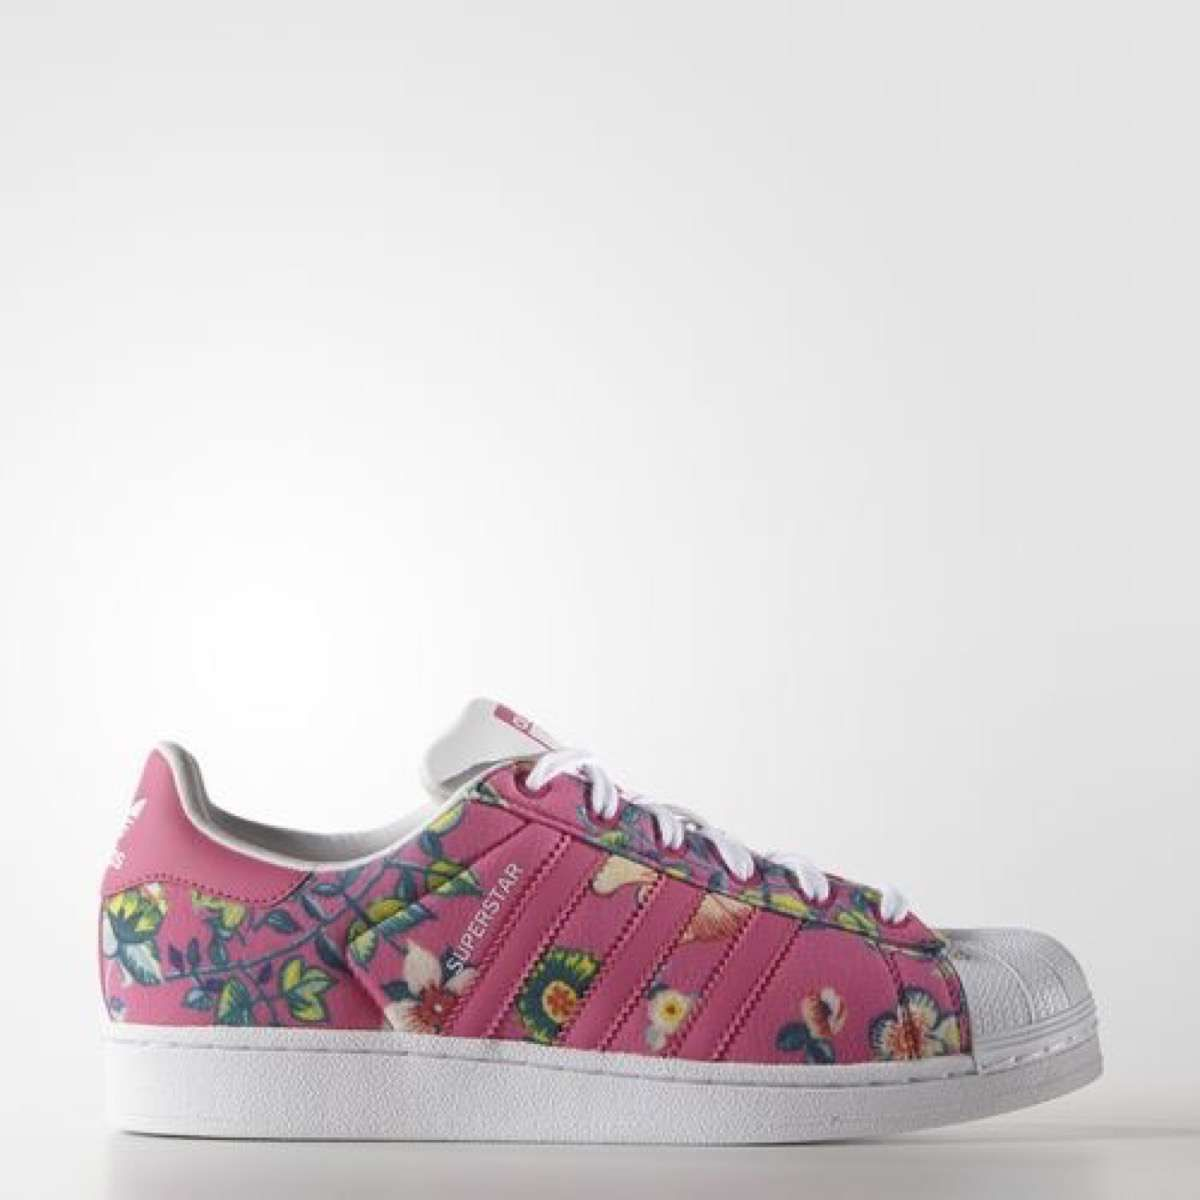 adidas superstar estampado